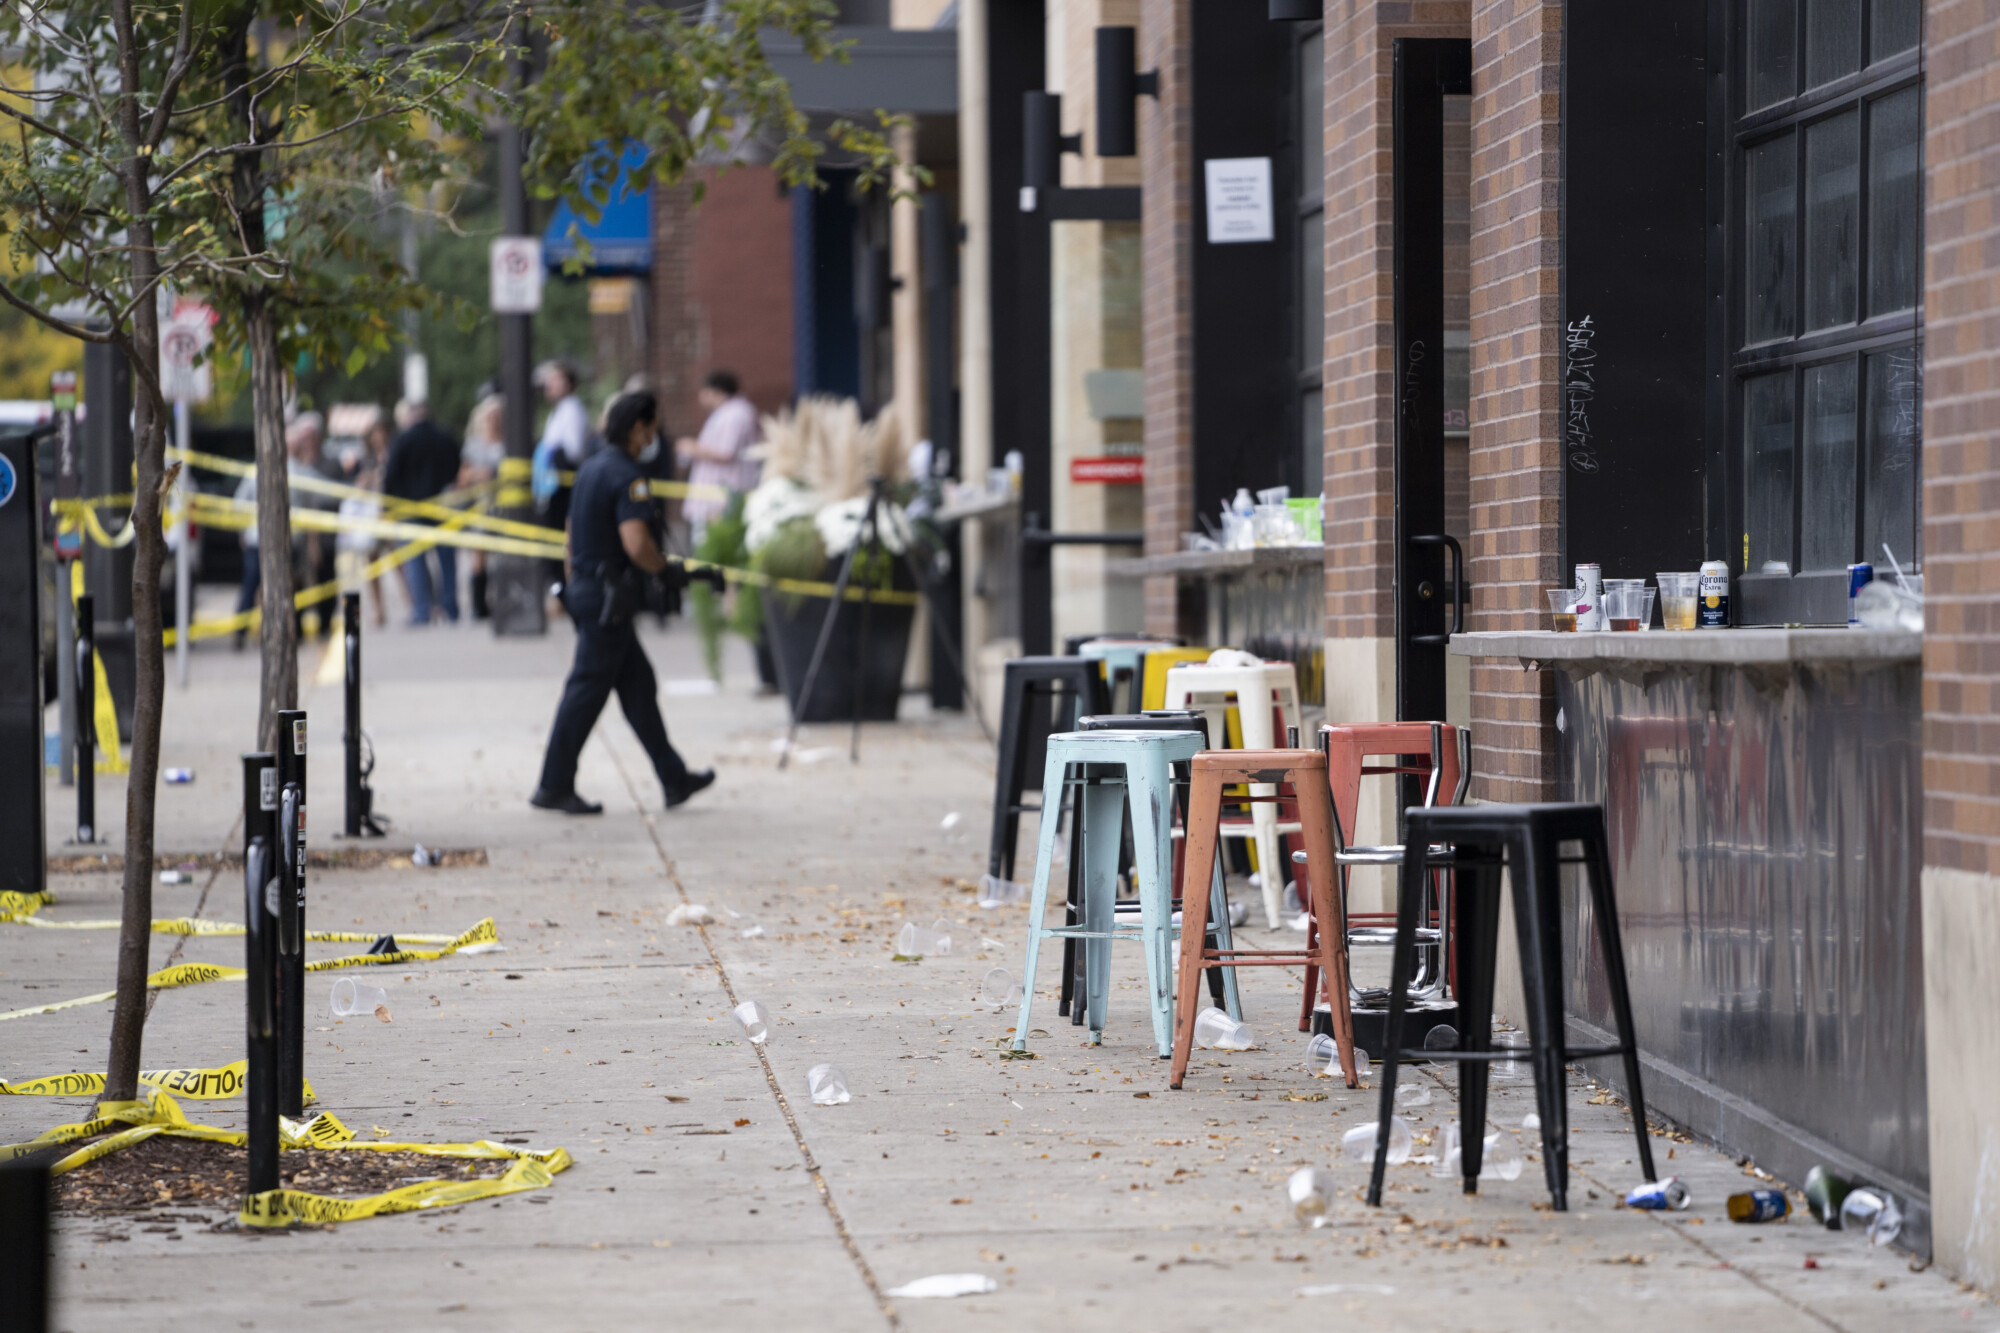 1 Killed, 14 Wounded in Shootout at Minnesota Bar